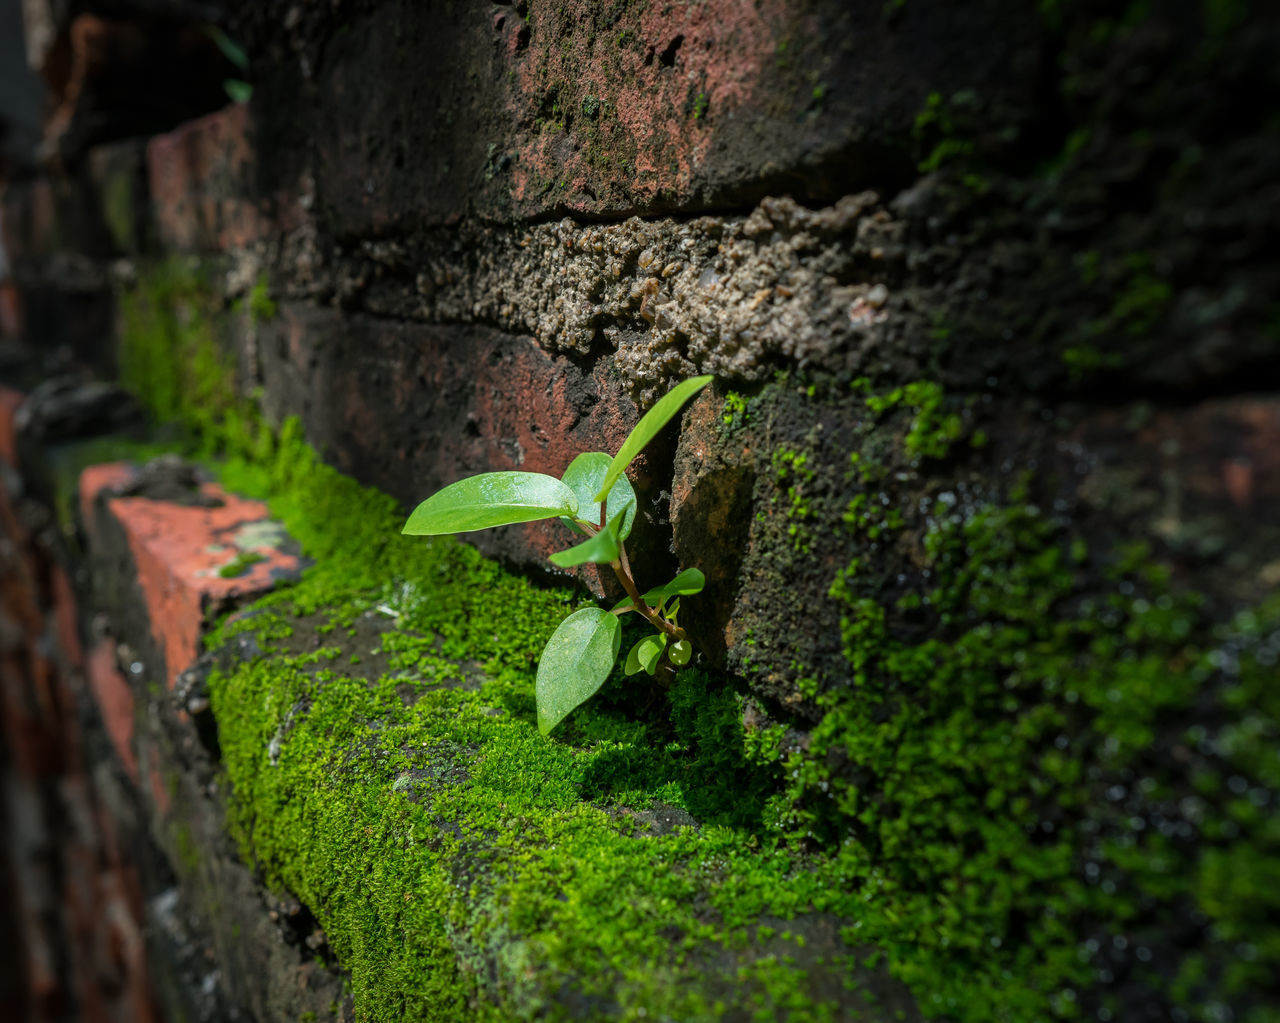 a new grow of banyan tree on the brick wall Beauty In Nature Beginnings Brick Wall Close-up Freshness Green Color Growth Leaf Moss & Lichen Nature No People Outdoors Plant Small Banyan Tree Small Tree Sprouts